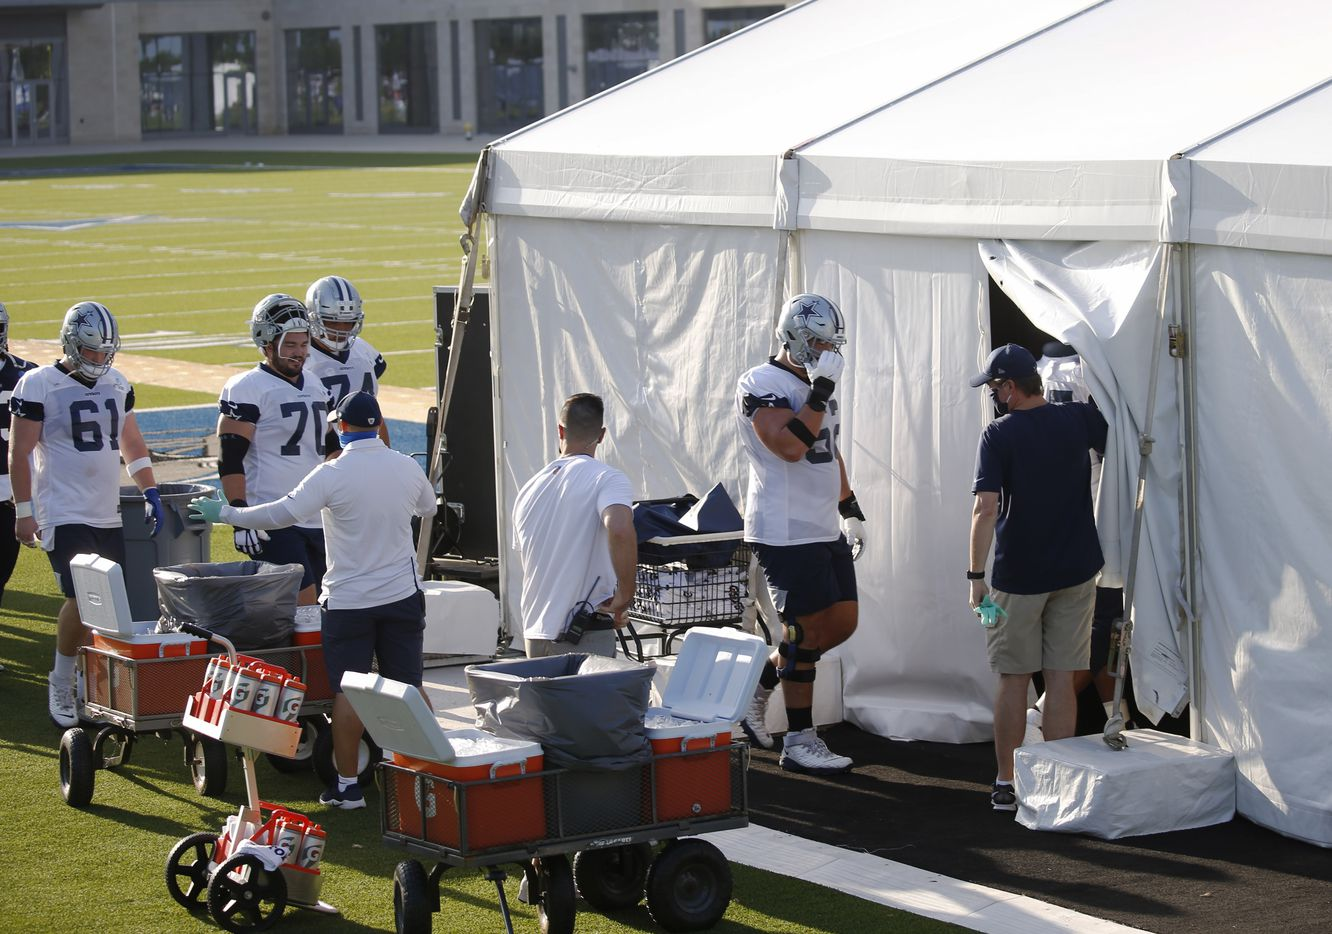 Dallas Cowboys center Marcus Henry (62) and other Dallas Cowboys players make their way into an air conditioned tent on the field during the first day of training camp at Dallas Cowboys headquarters at The Star in Frisco, Texas on Friday, August 14, 2020. (Vernon Bryant/The Dallas Morning News)